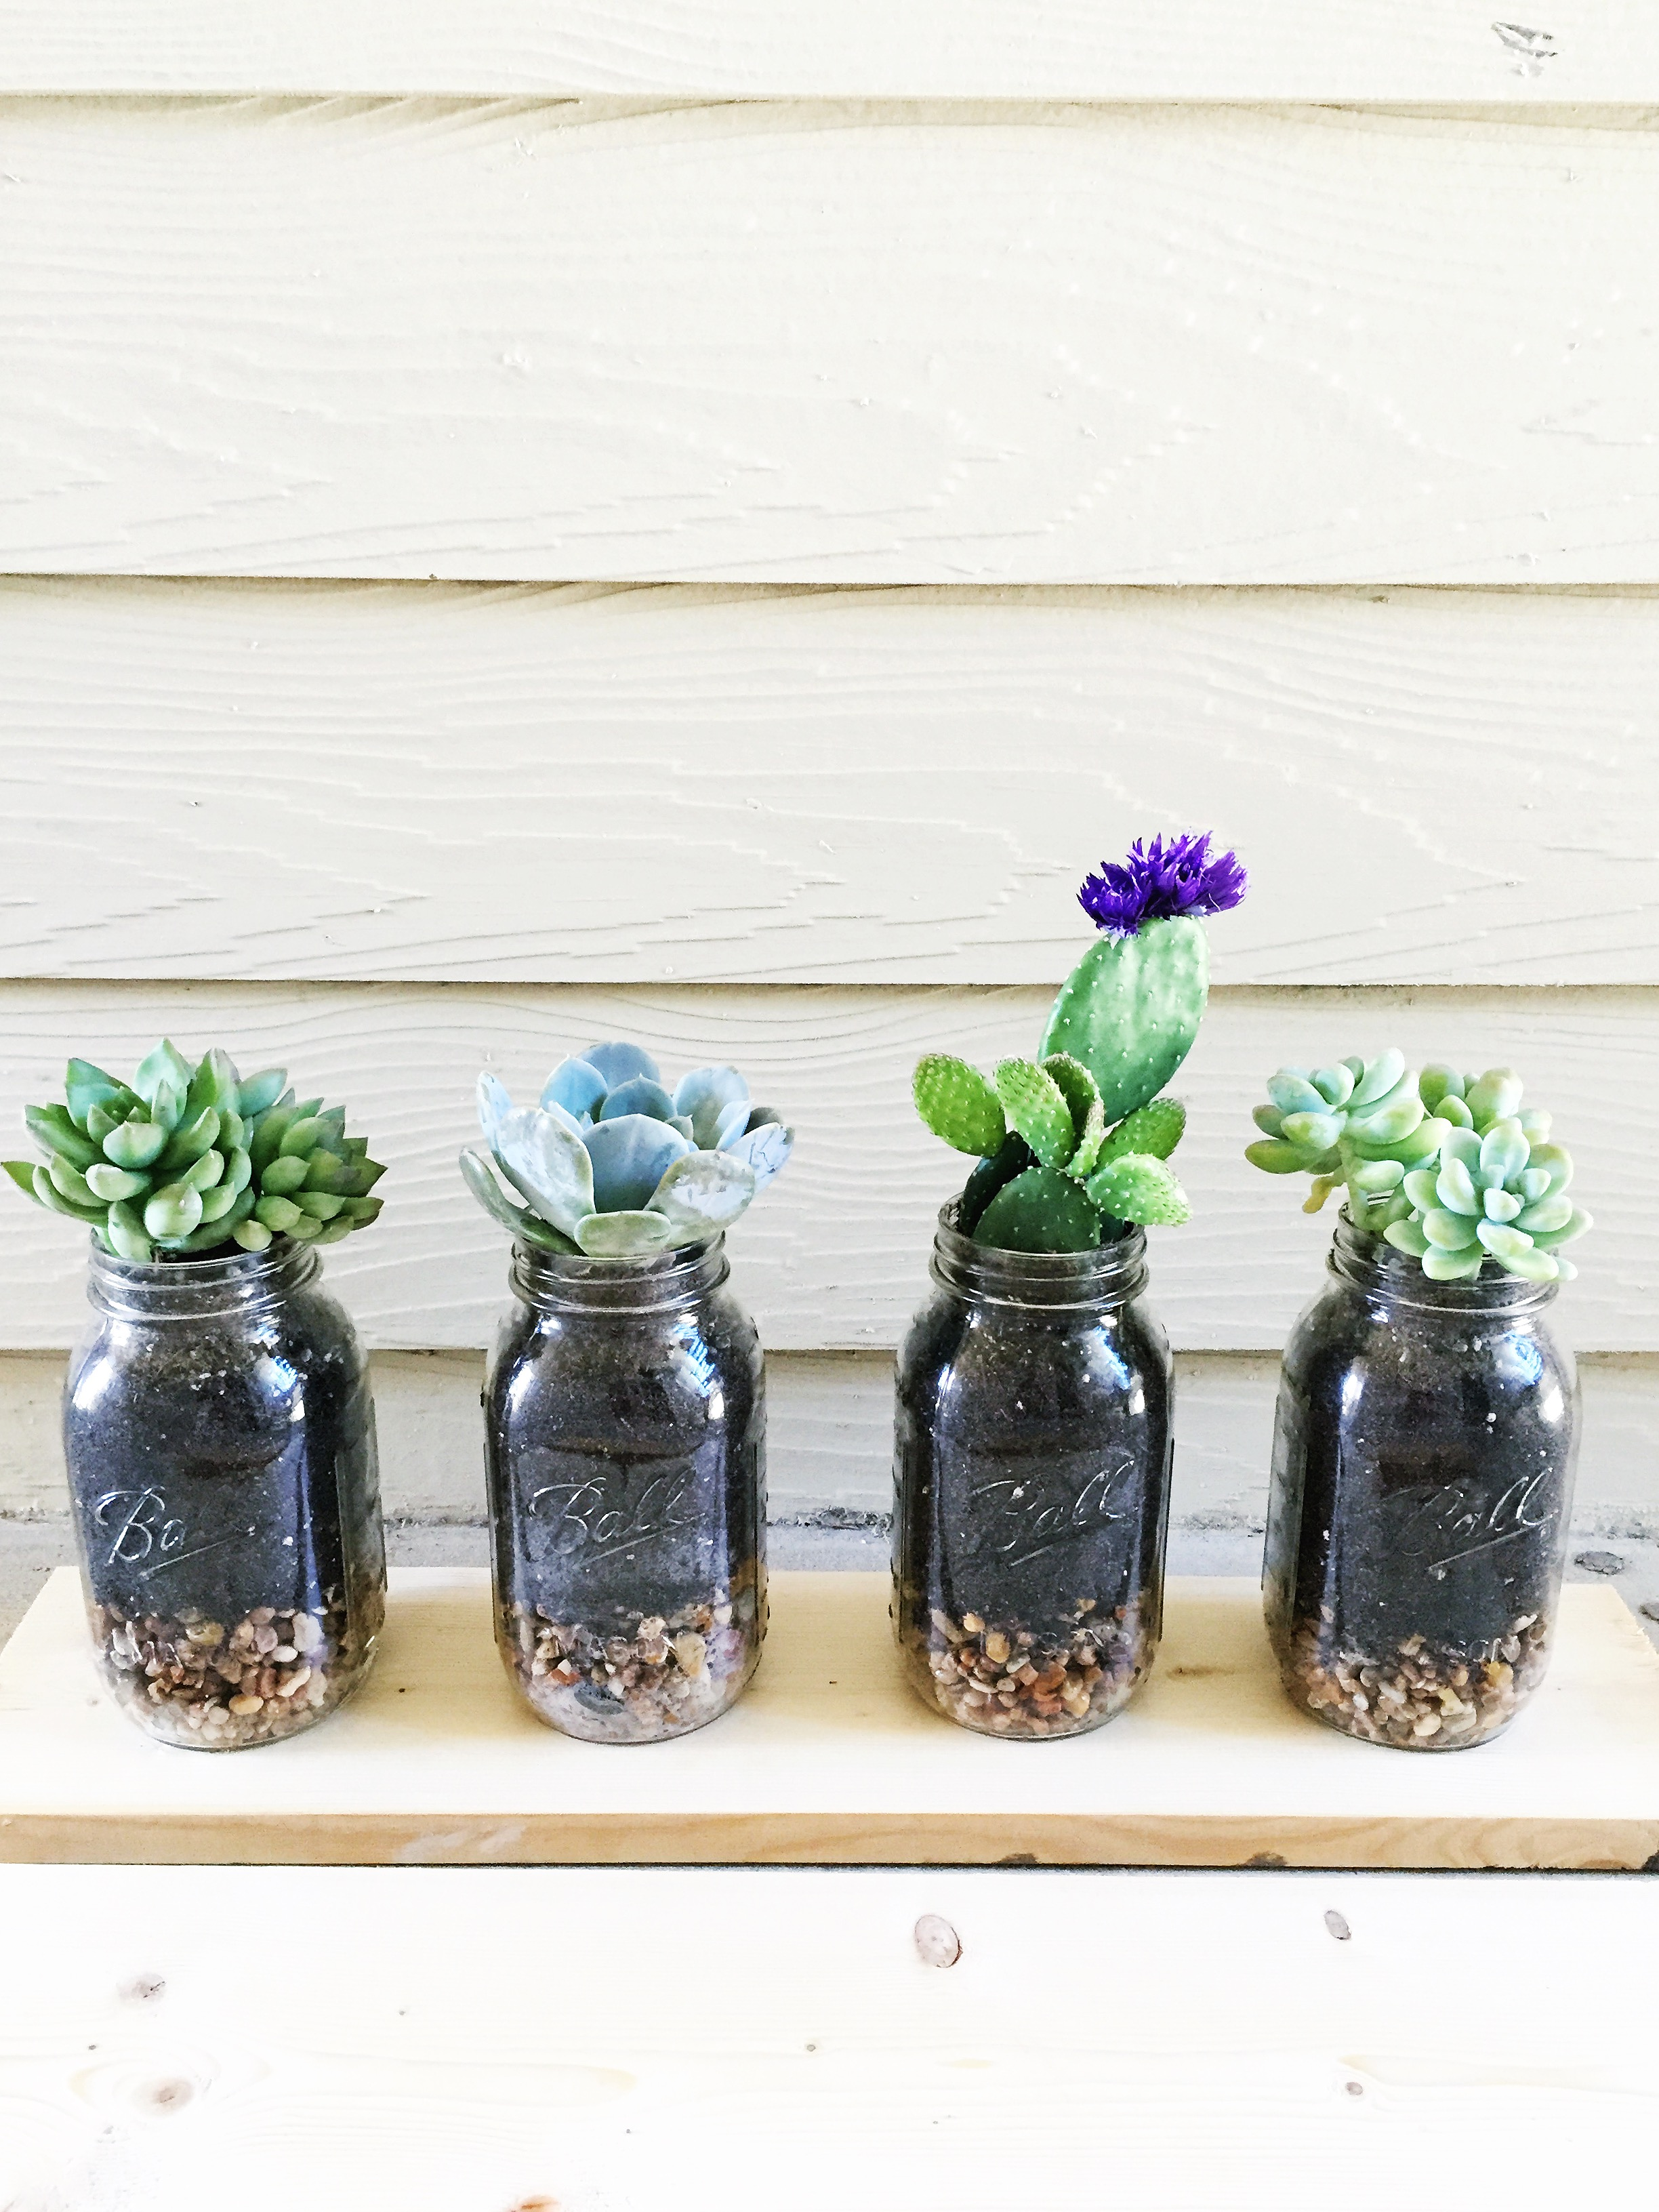 Diy mason jar succulents town lifestyle design diy mason jar succulents town lifestyle design the perfect homemade mothers solutioingenieria Gallery